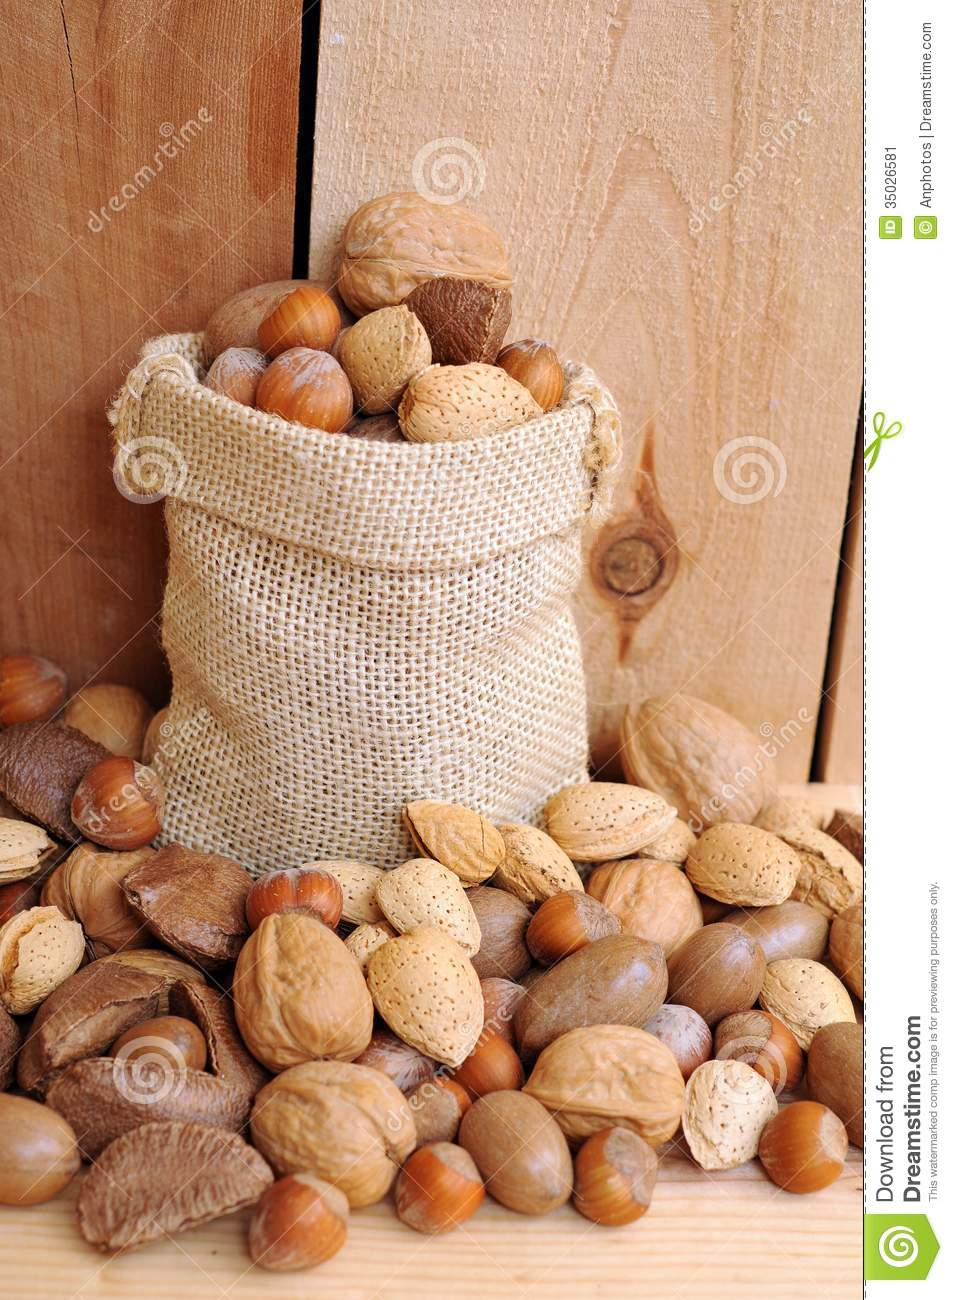 nut sack Learn about working at nutsack foods join linkedin today for free see who you  know at nutsack foods, leverage your professional network, and get hired.